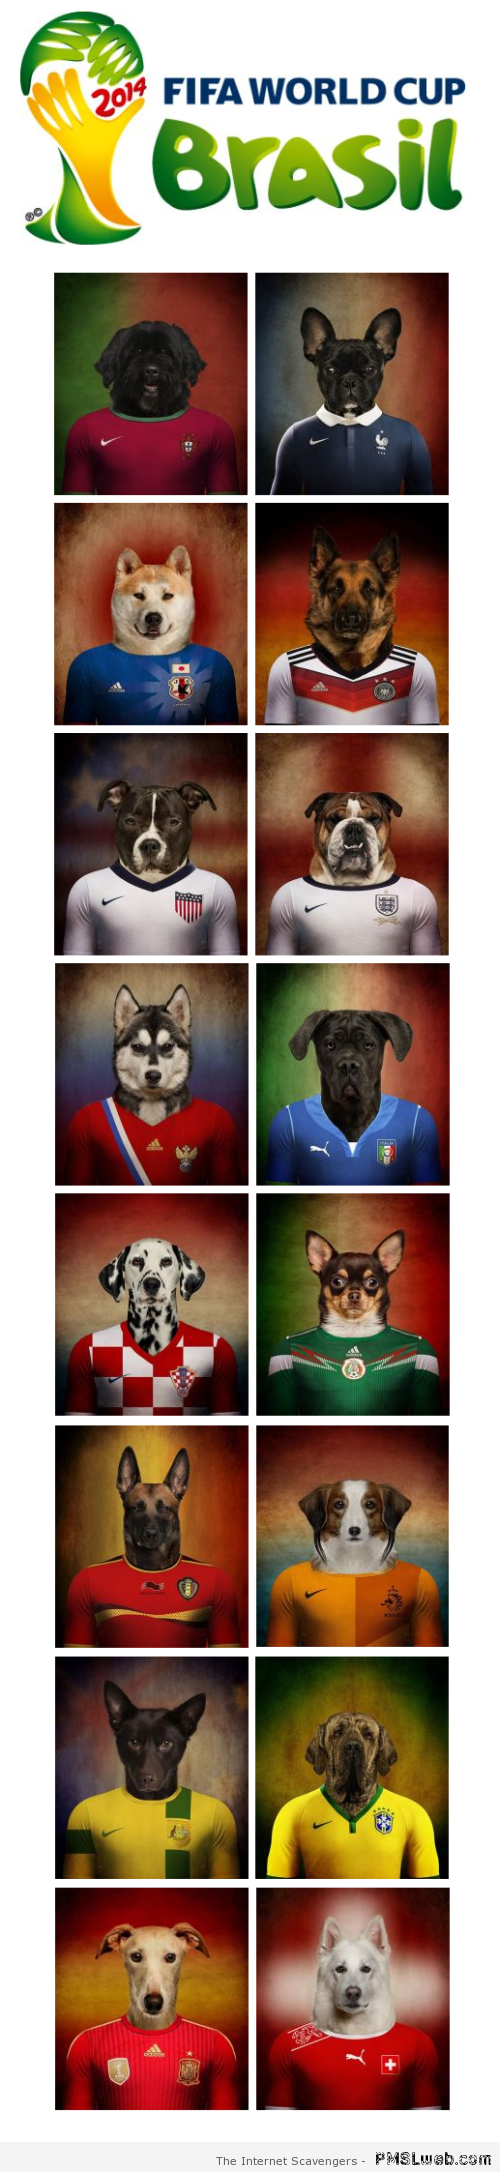 Fifa world cup dogs – FIFA World cup humor at PMSLweb.com